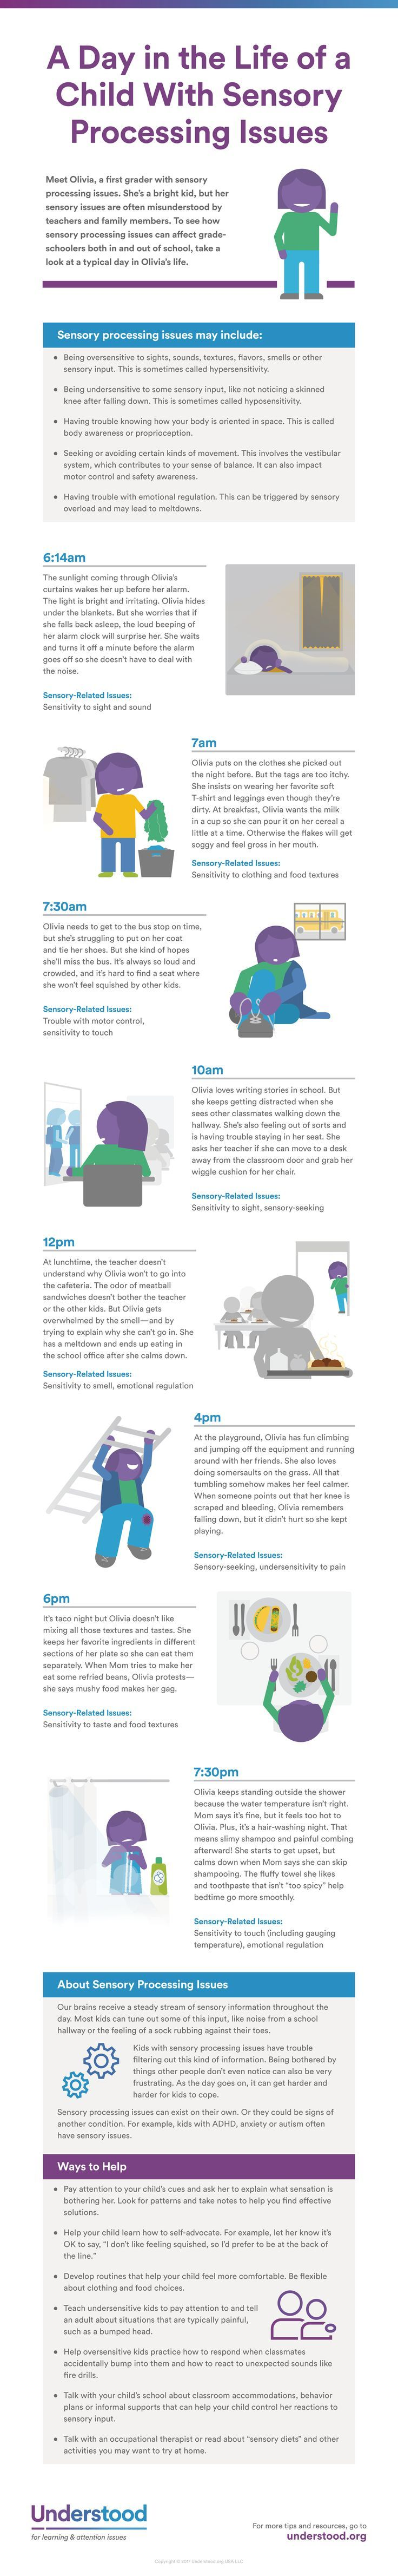 How Sensory Processing Issues Affect >> A Day In The Life Of A Child With Sensory Processing Issues